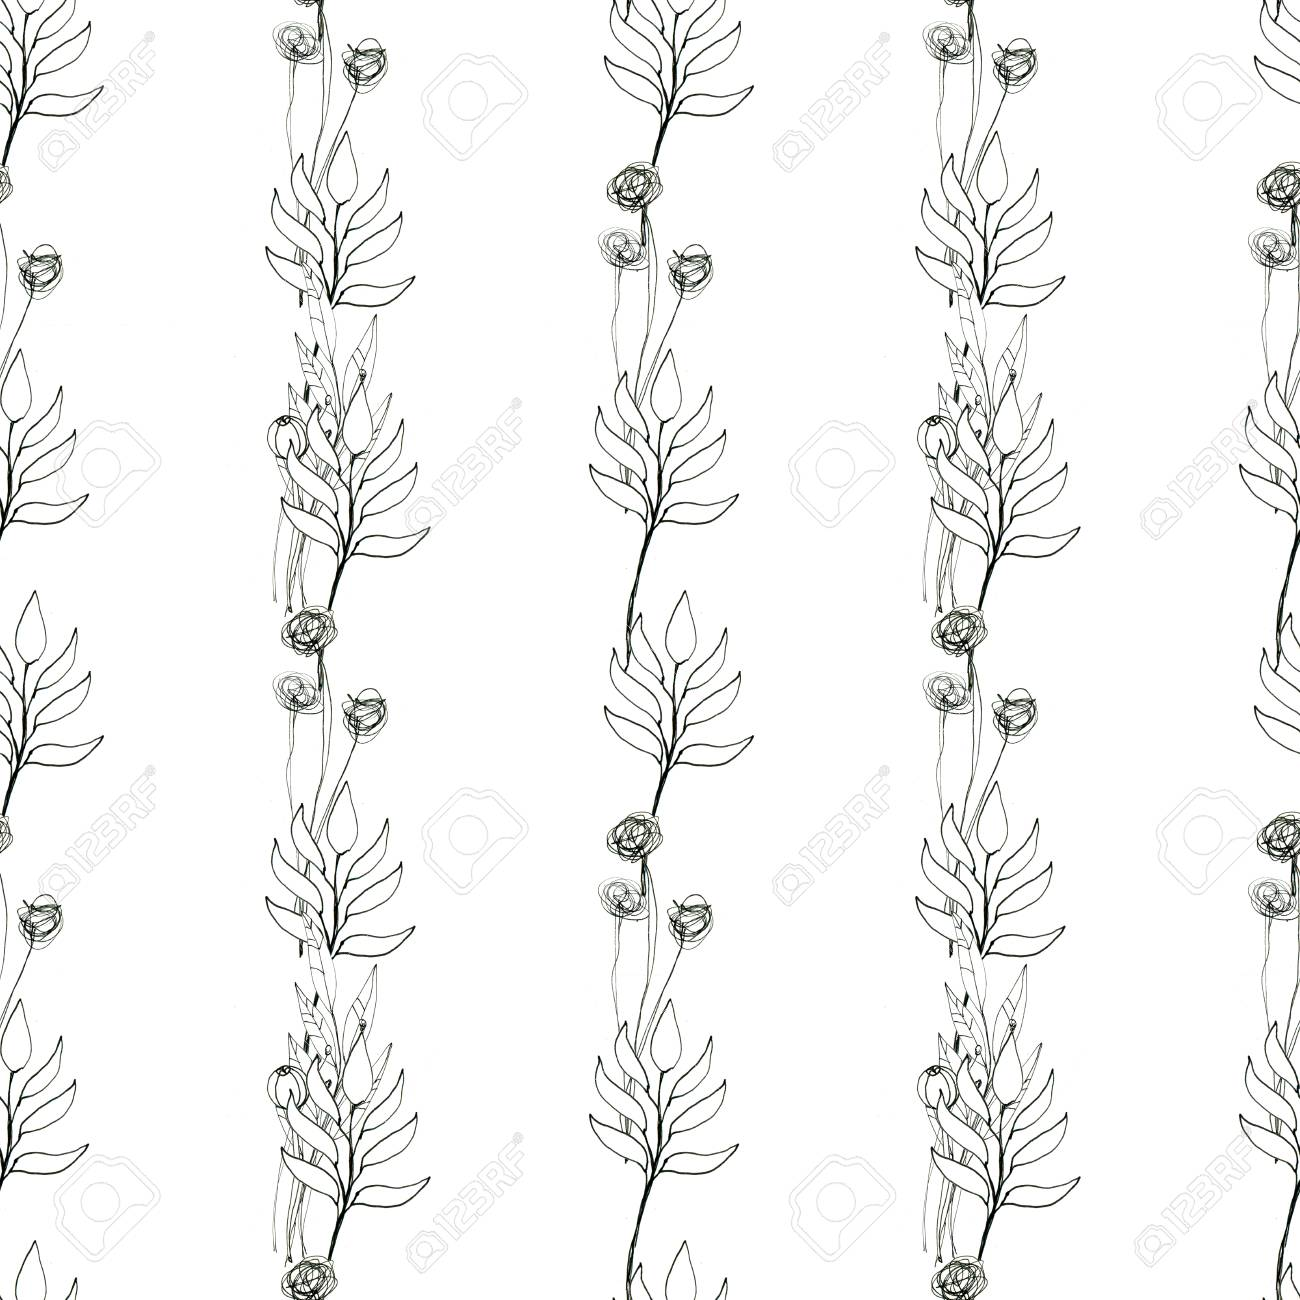 Seamless Floral With Abstract Black And White Flowers Floral